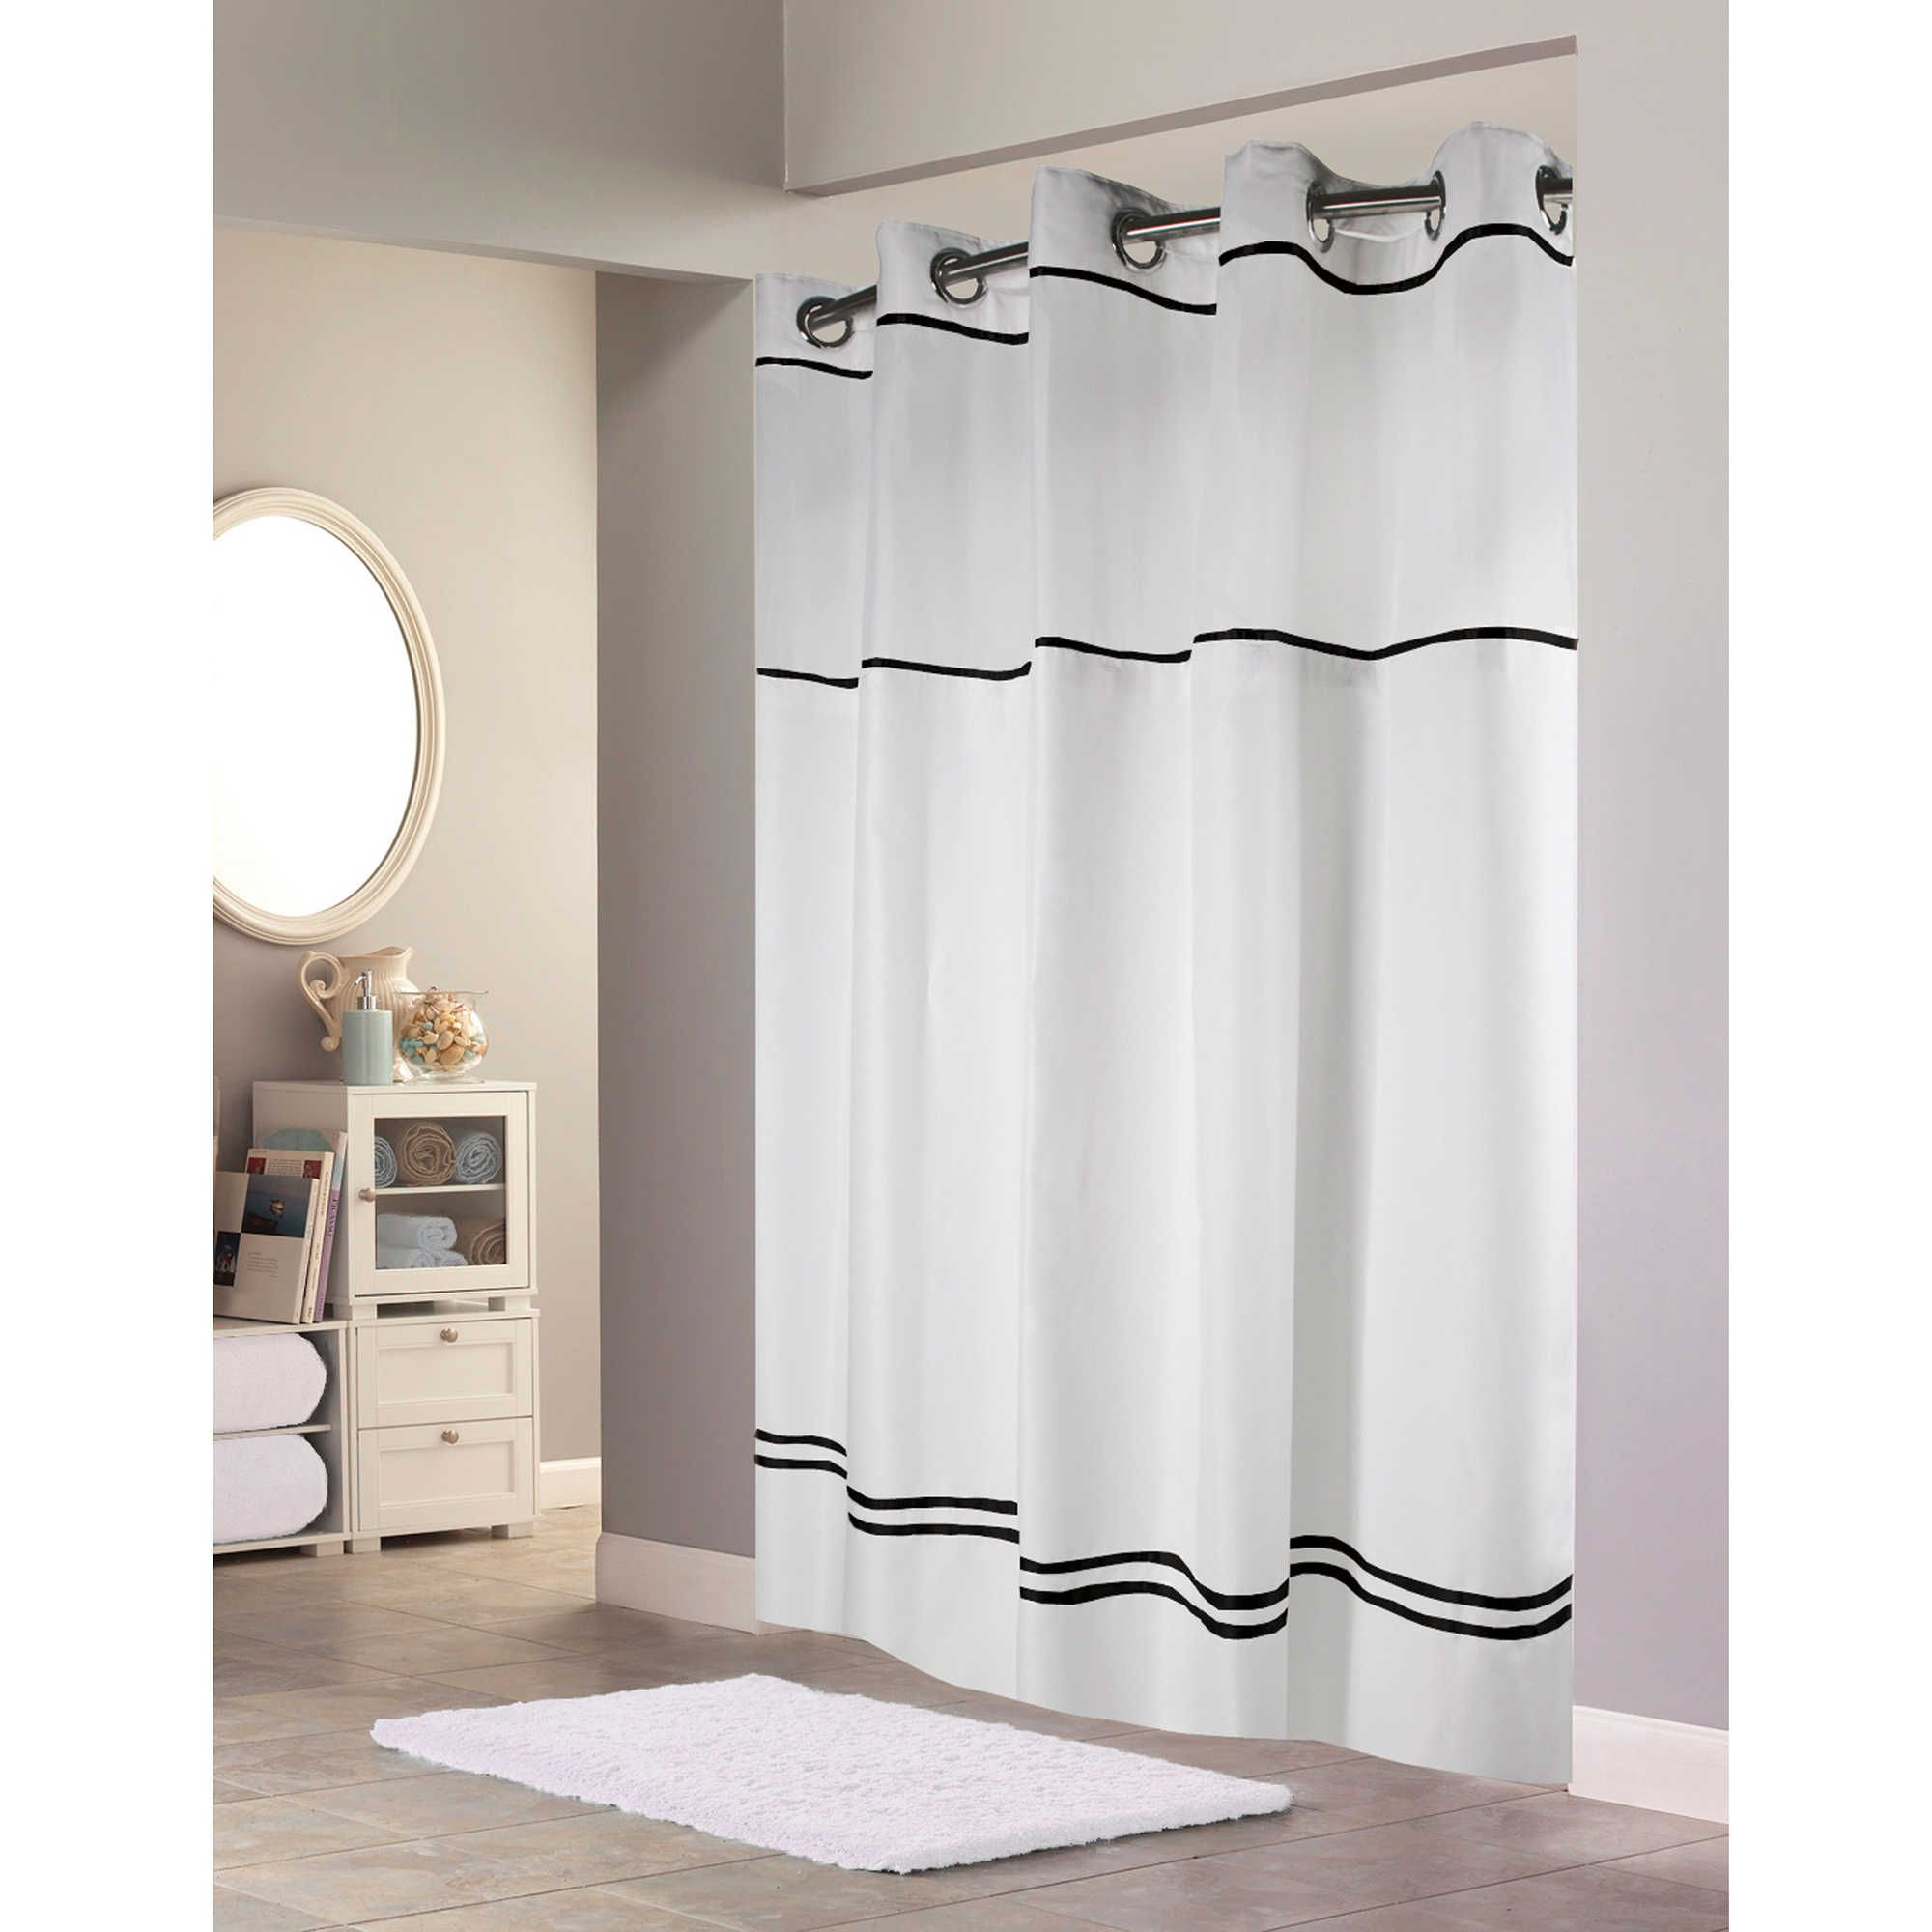 Hookless® Escape Fabric Shower Curtain and Liner Set